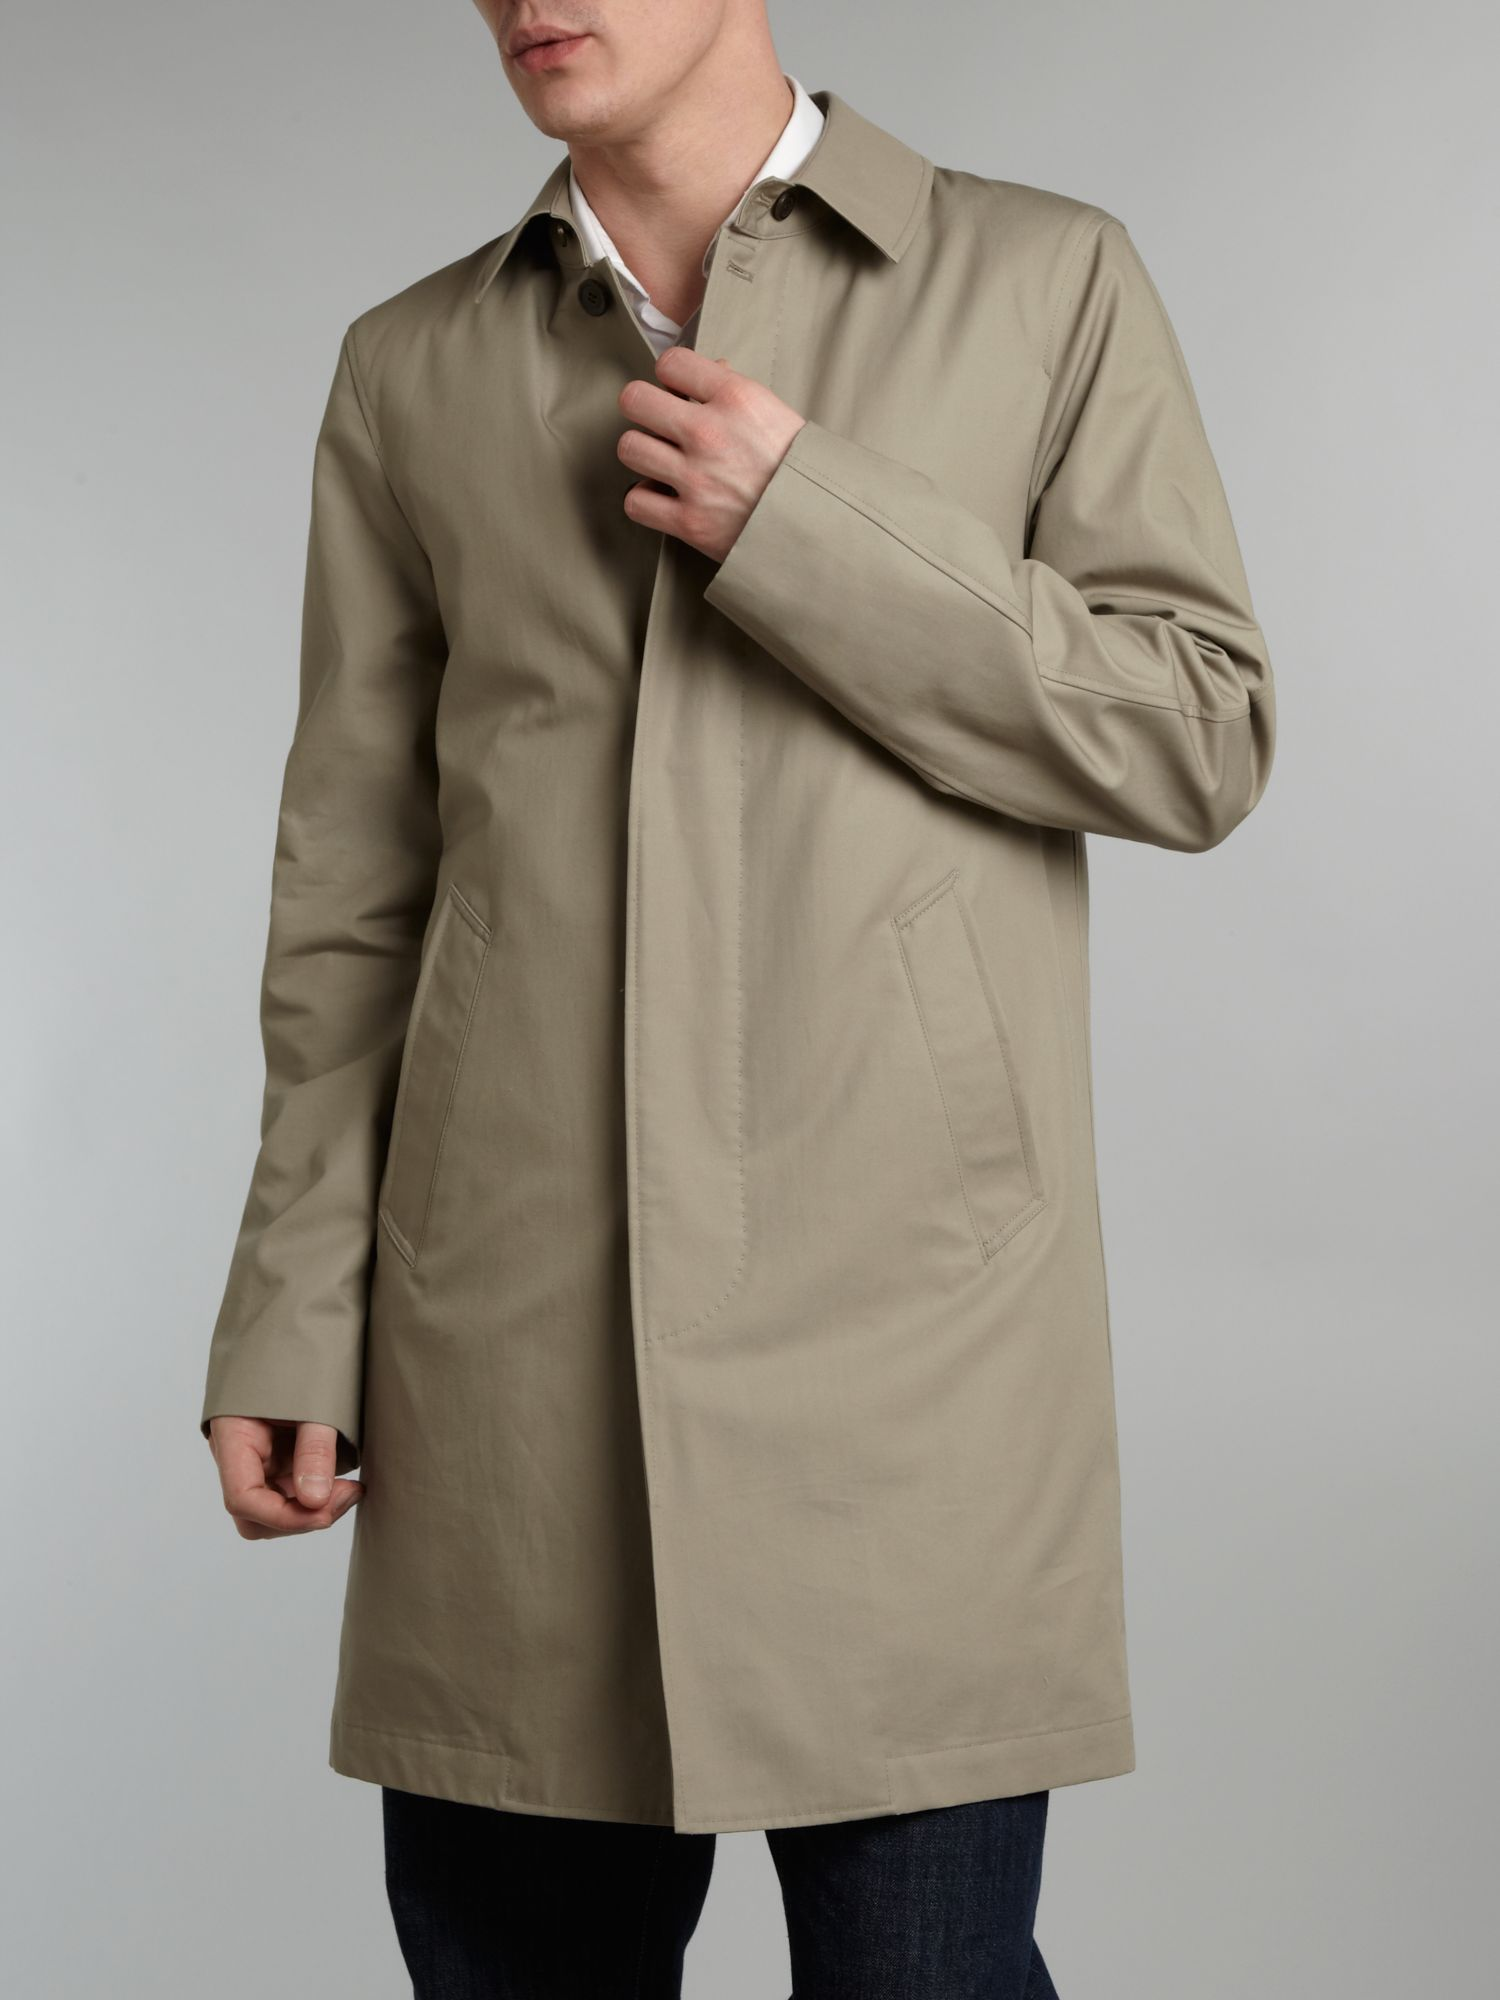 The rainy season hit a bit late this year, so if there's one item that we've all been (unfortunately) reaching for, it's the Mackintosh rain jacket. While a